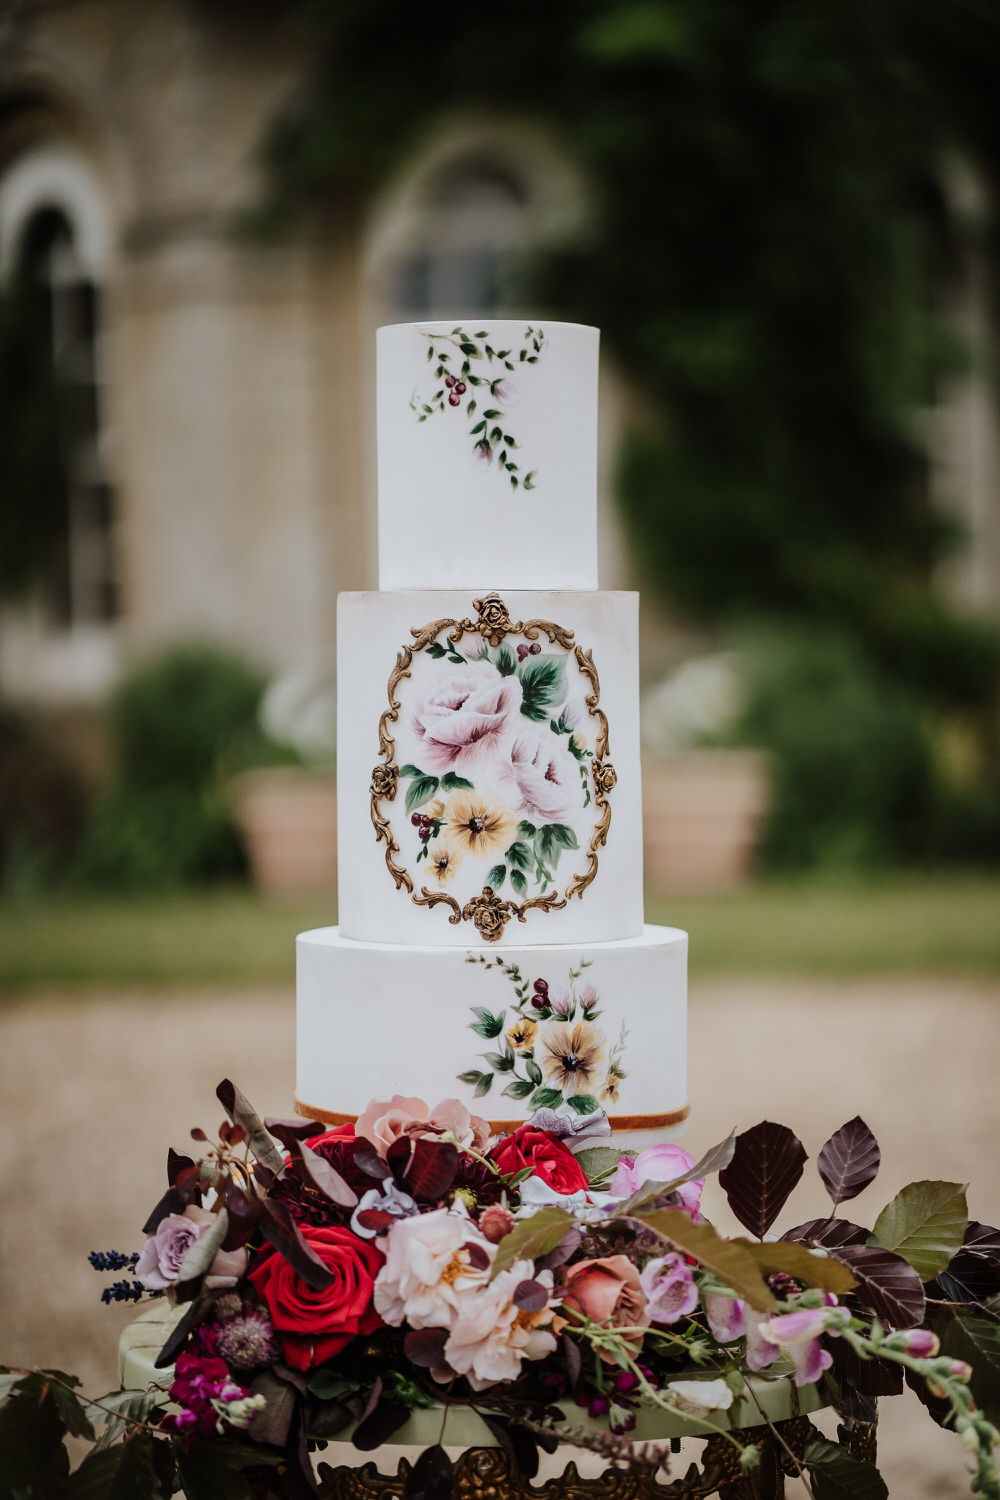 Cake Table Painted Floral Illustrated Art Pylewell Park Wedding New Forest Studio